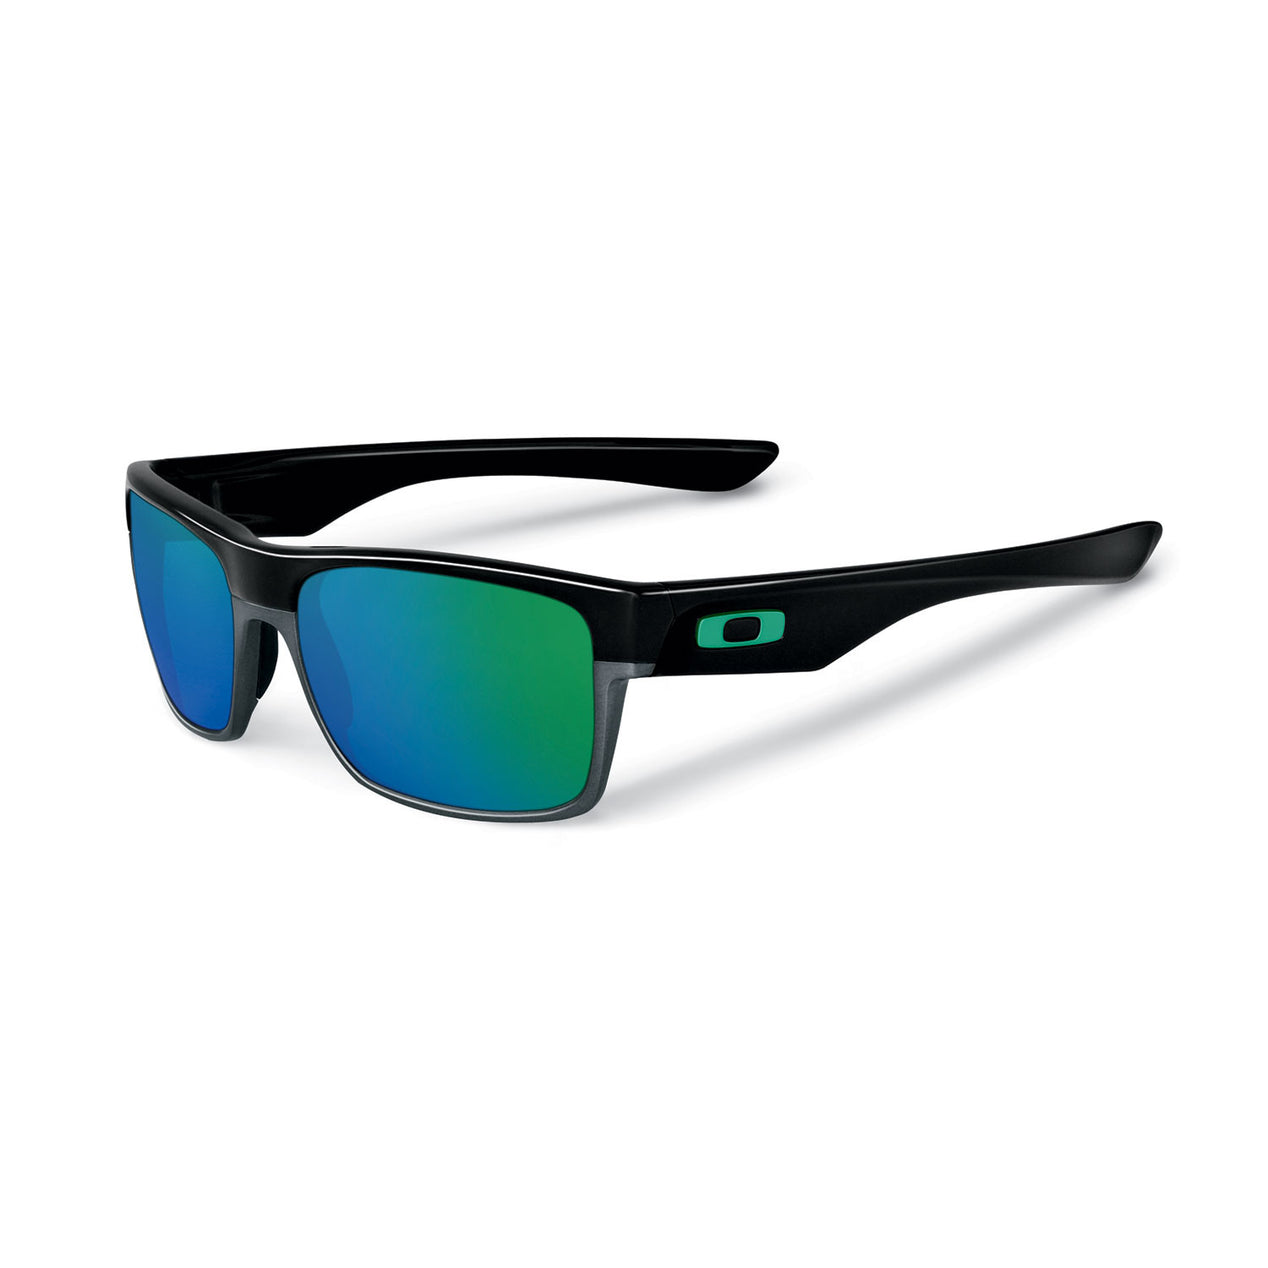 644776da68 Oakley Twoface - Polished Black - Jade Iridium Lens